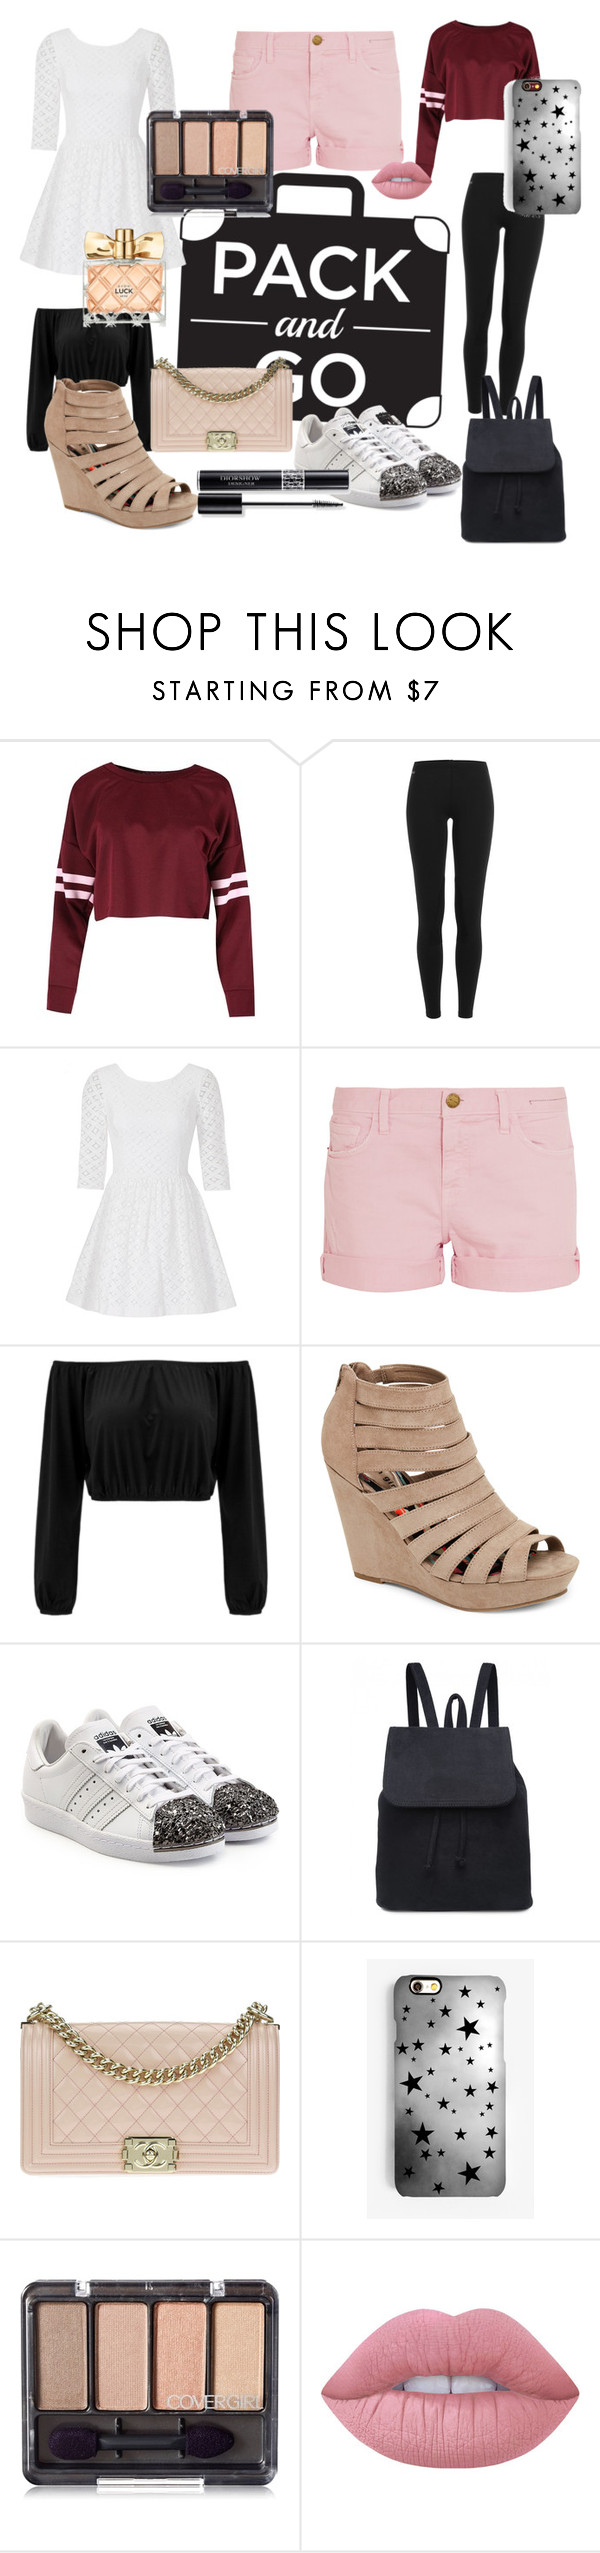 """What to pack for the weekend💼"" by chesneyd ❤ liked on Polyvore featuring Polo Ralph Lauren, Lilly Pulitzer, Current/Elliott, Madden Girl, adidas Originals, Chanel, Rianna Phillips, Christian Dior, Lime Crime and Avon"